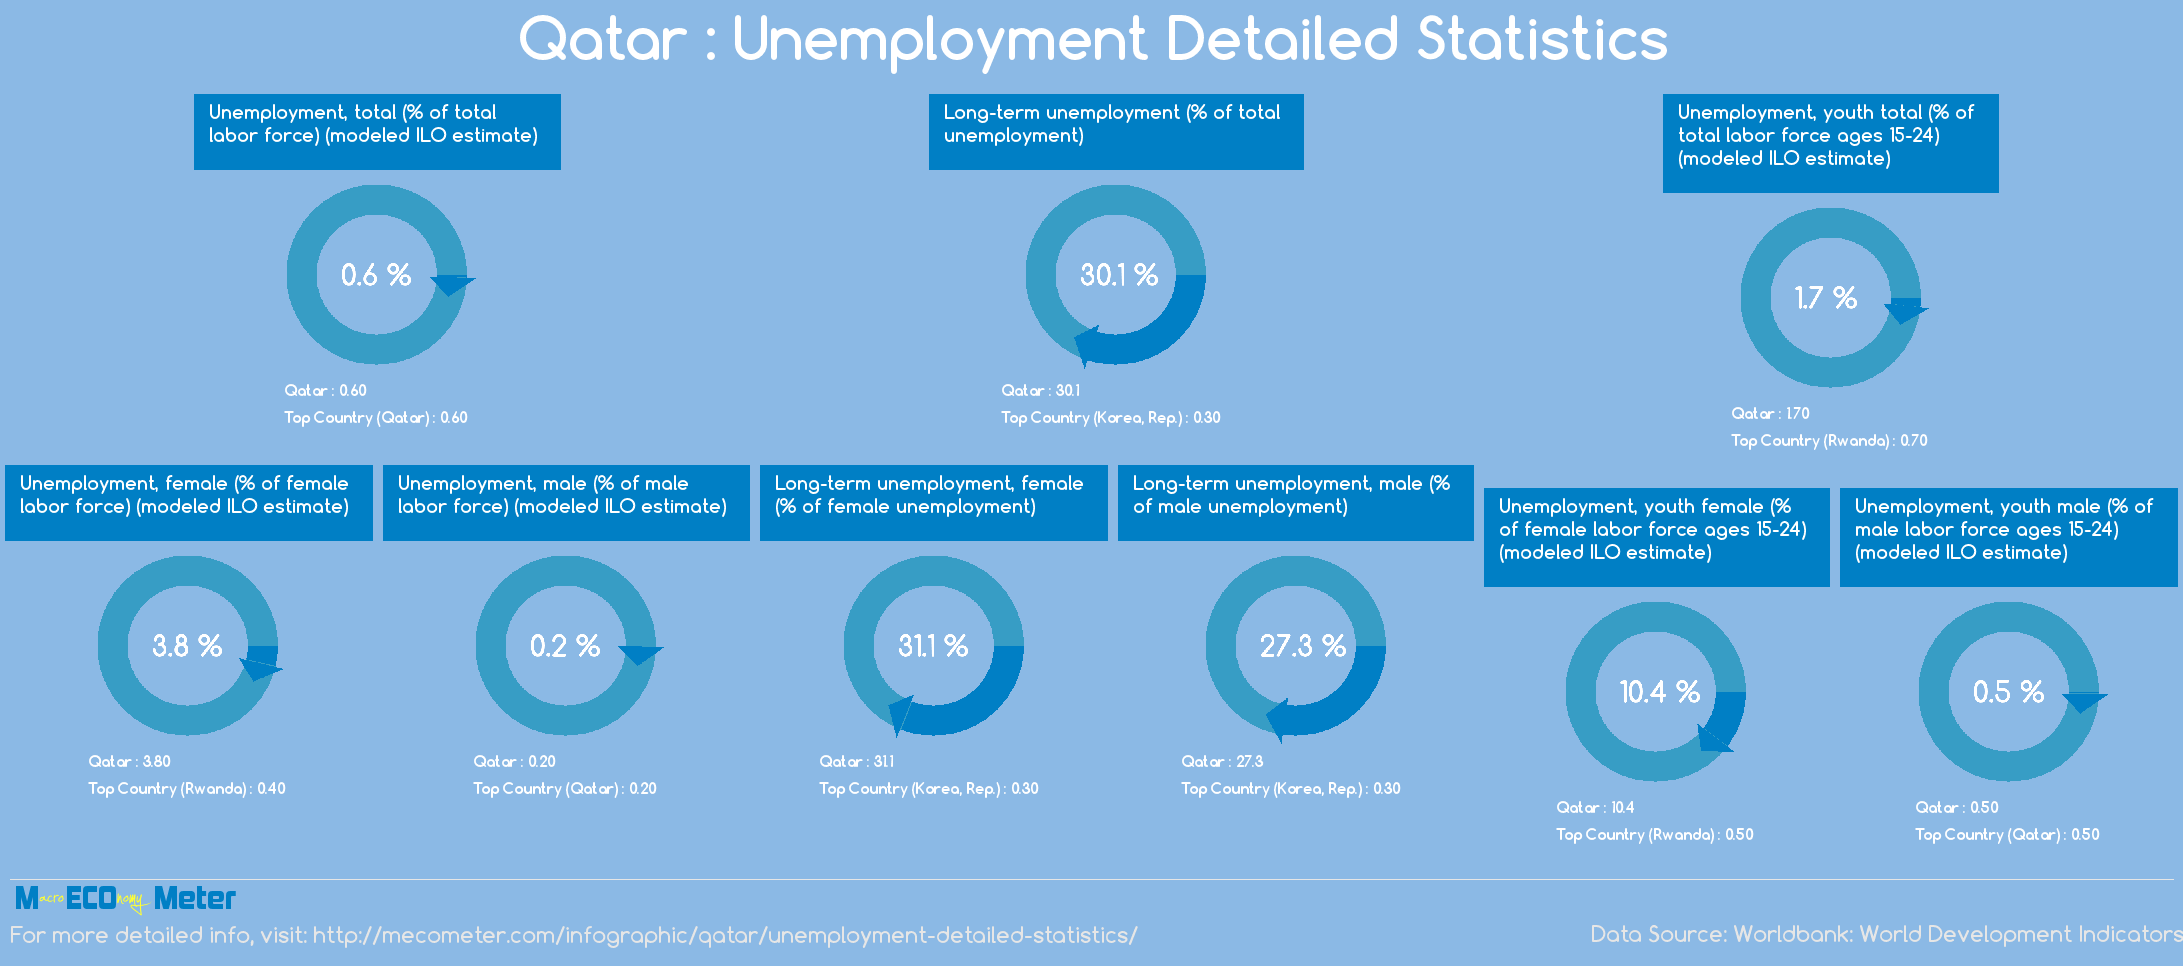 Qatar : Unemployment Detailed Statistics